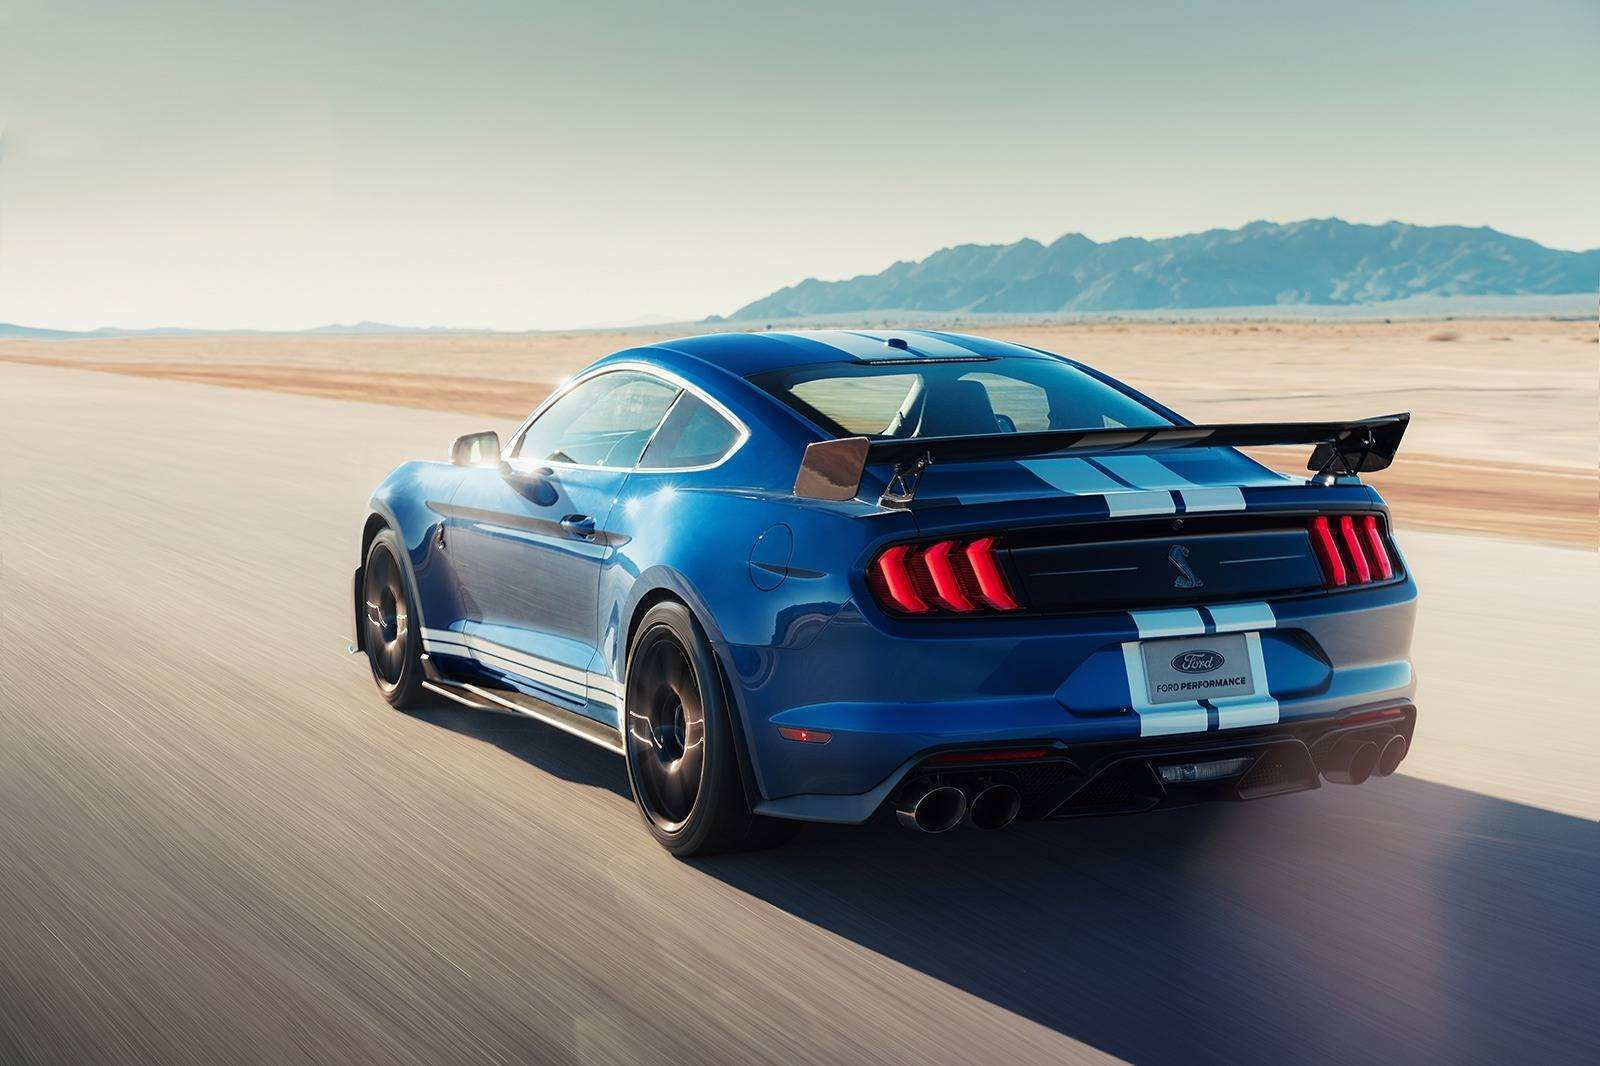 37 New Price Of 2020 Ford Mustang Gt500 Price And Release Date